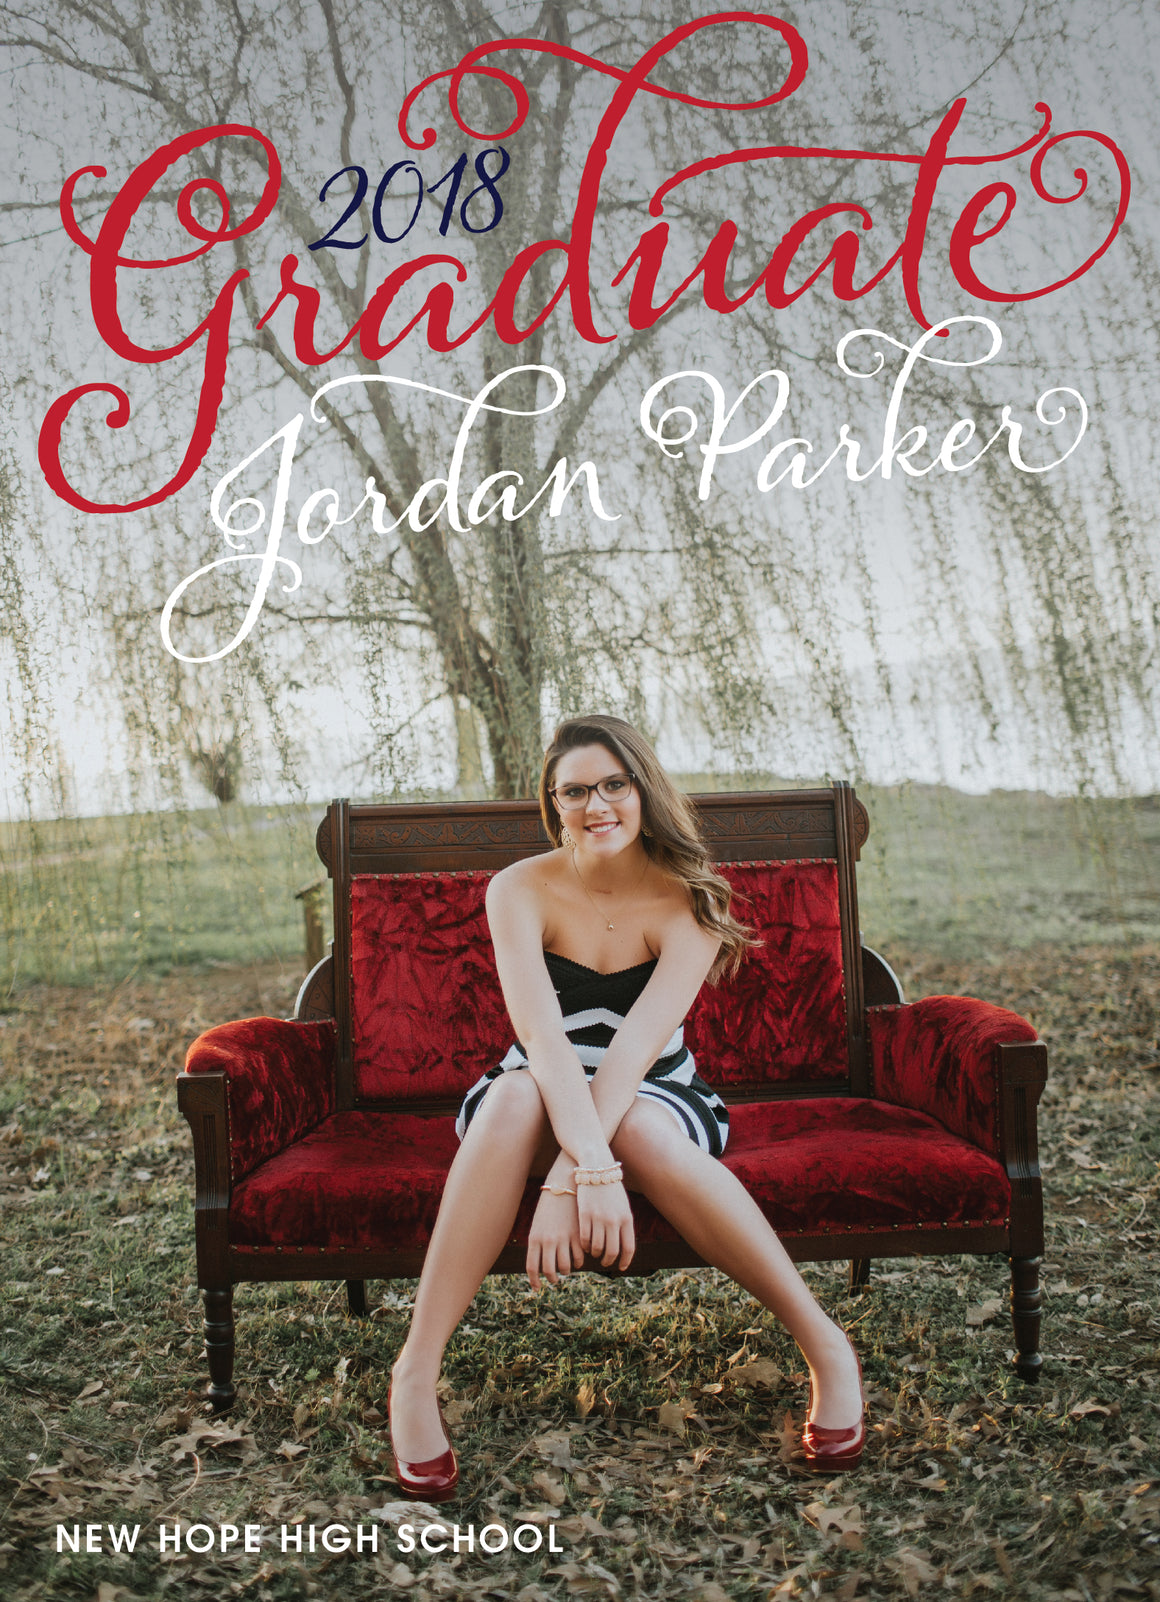 Jordan Graduation Announcement